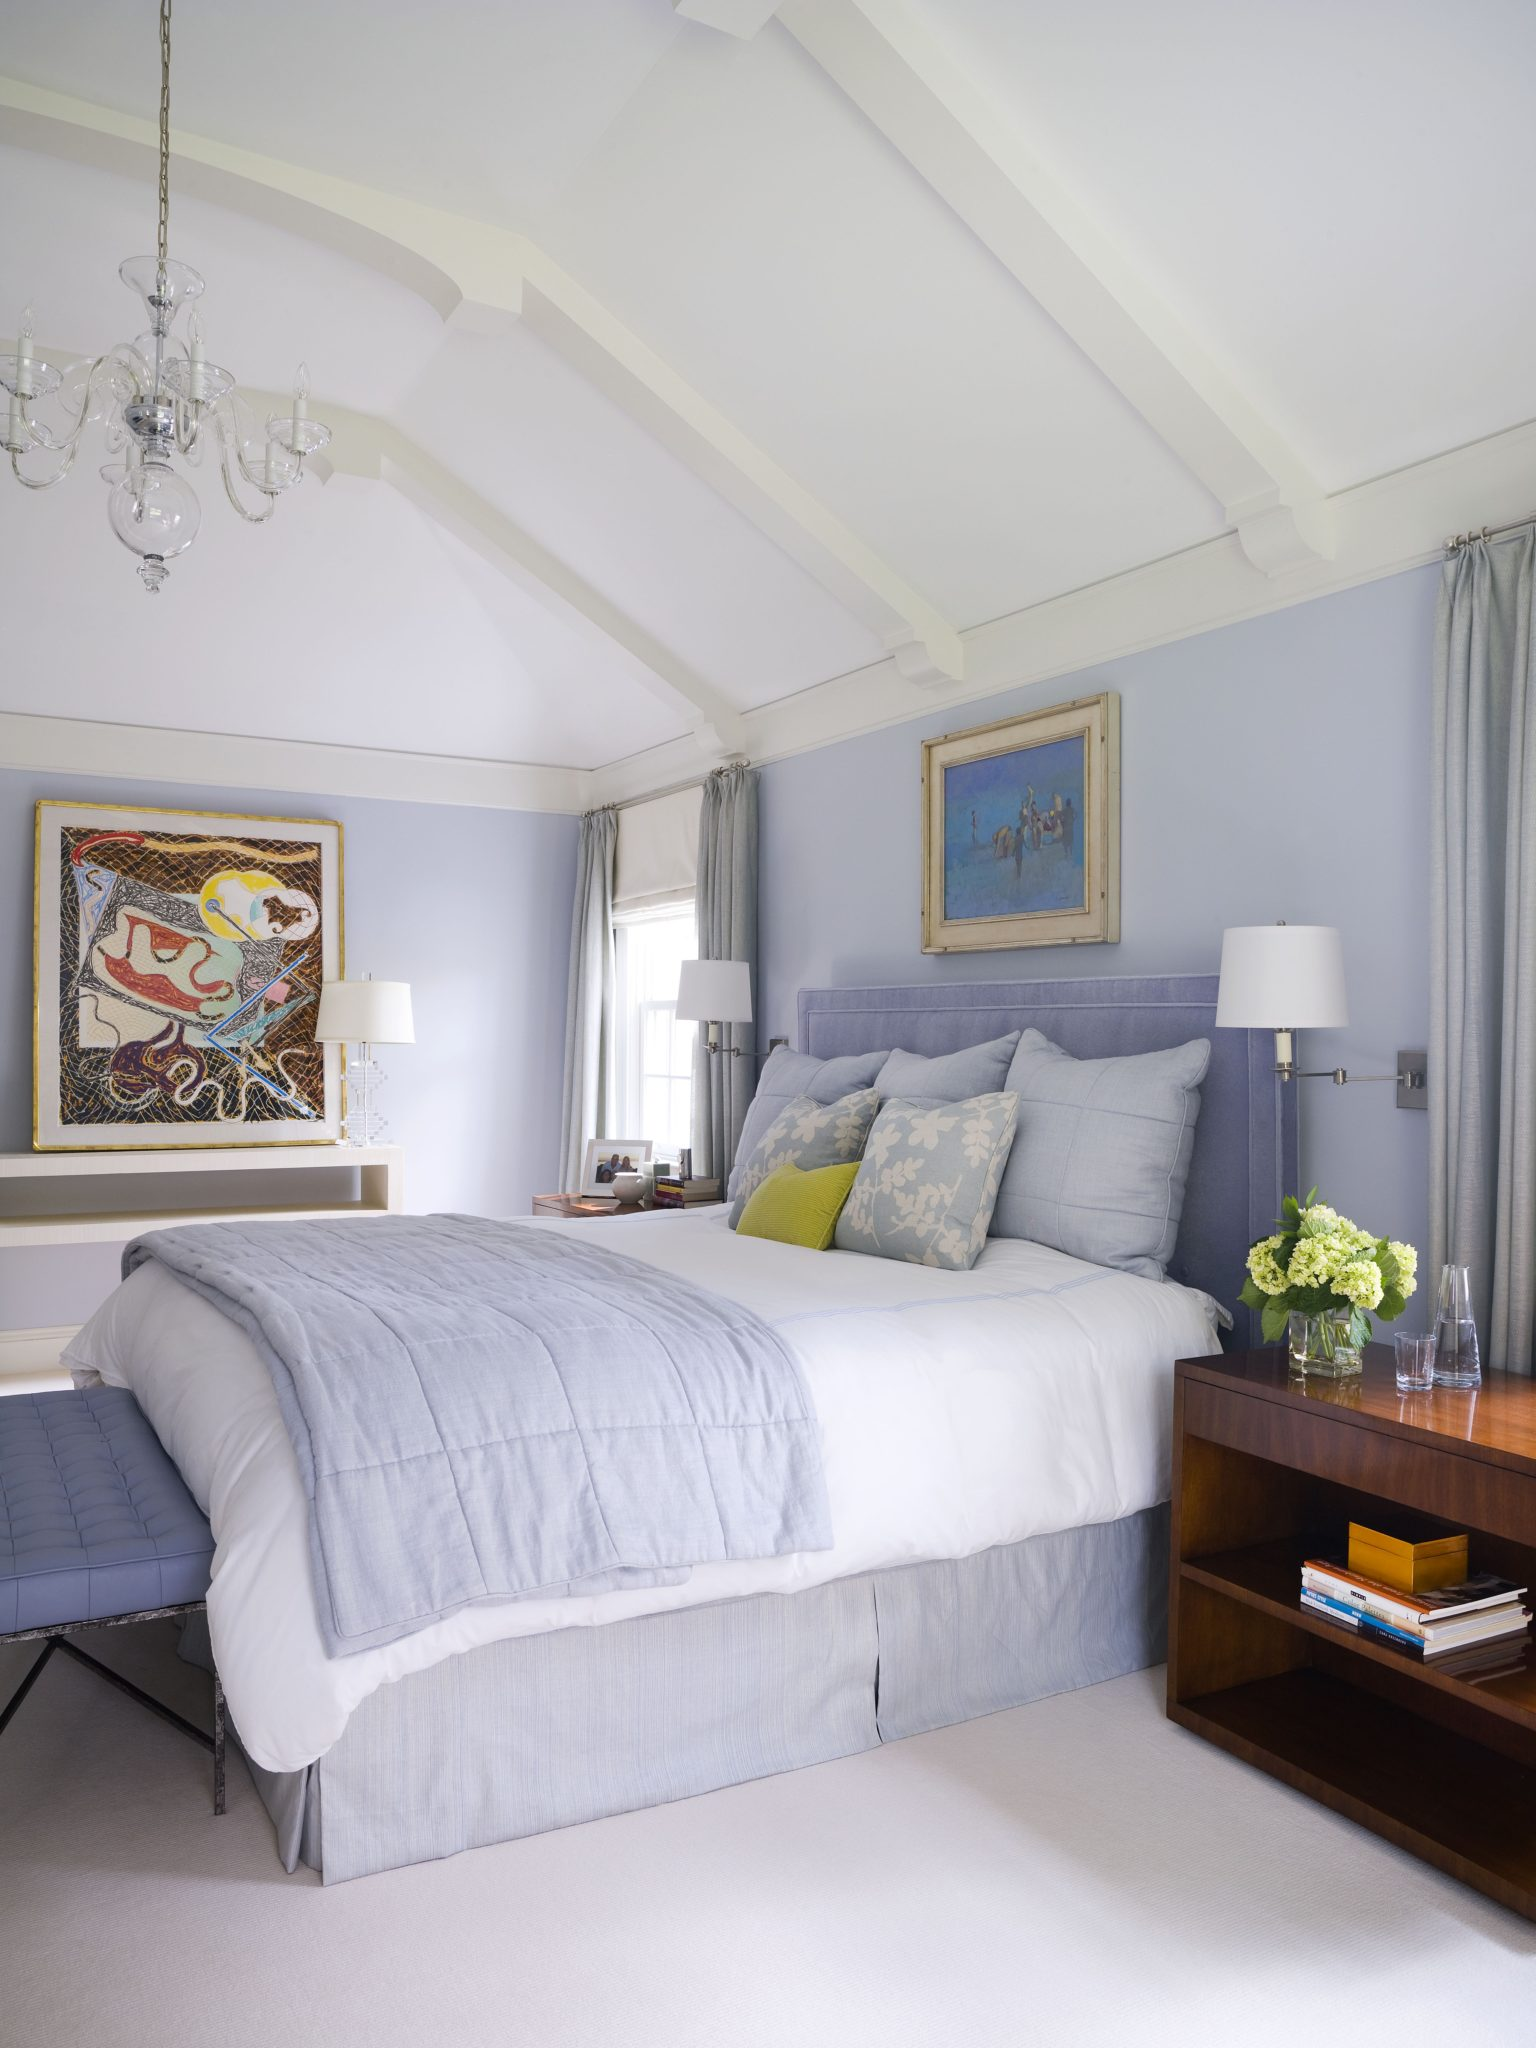 Transitional bedroom with beams by Alisberg Parker Architects